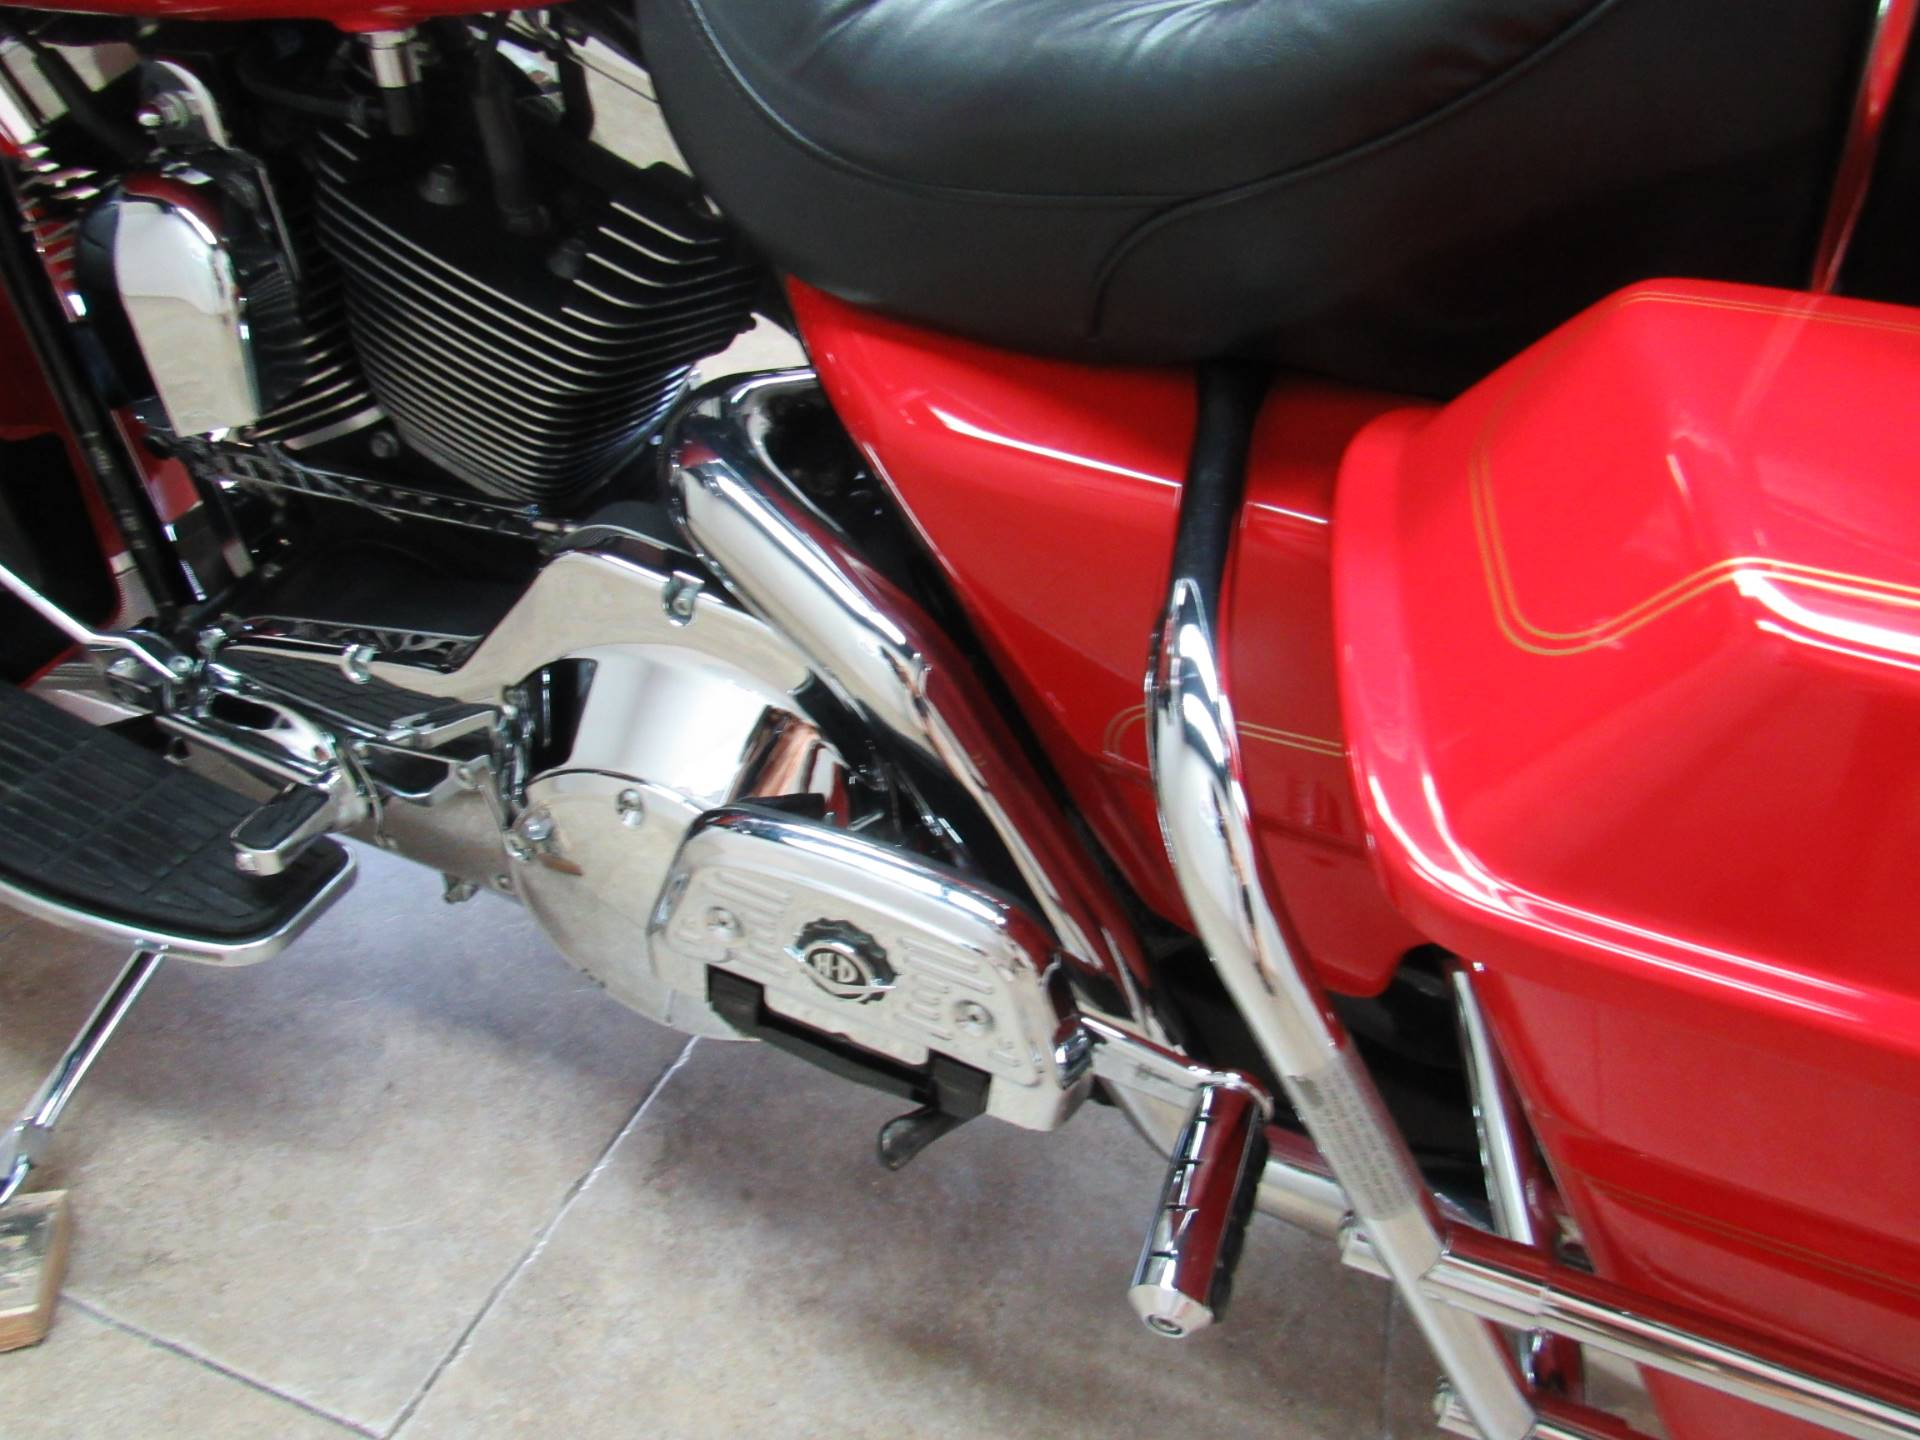 2003 Harley-Davidson Firefighter Special Edition in Temecula, California - Photo 29